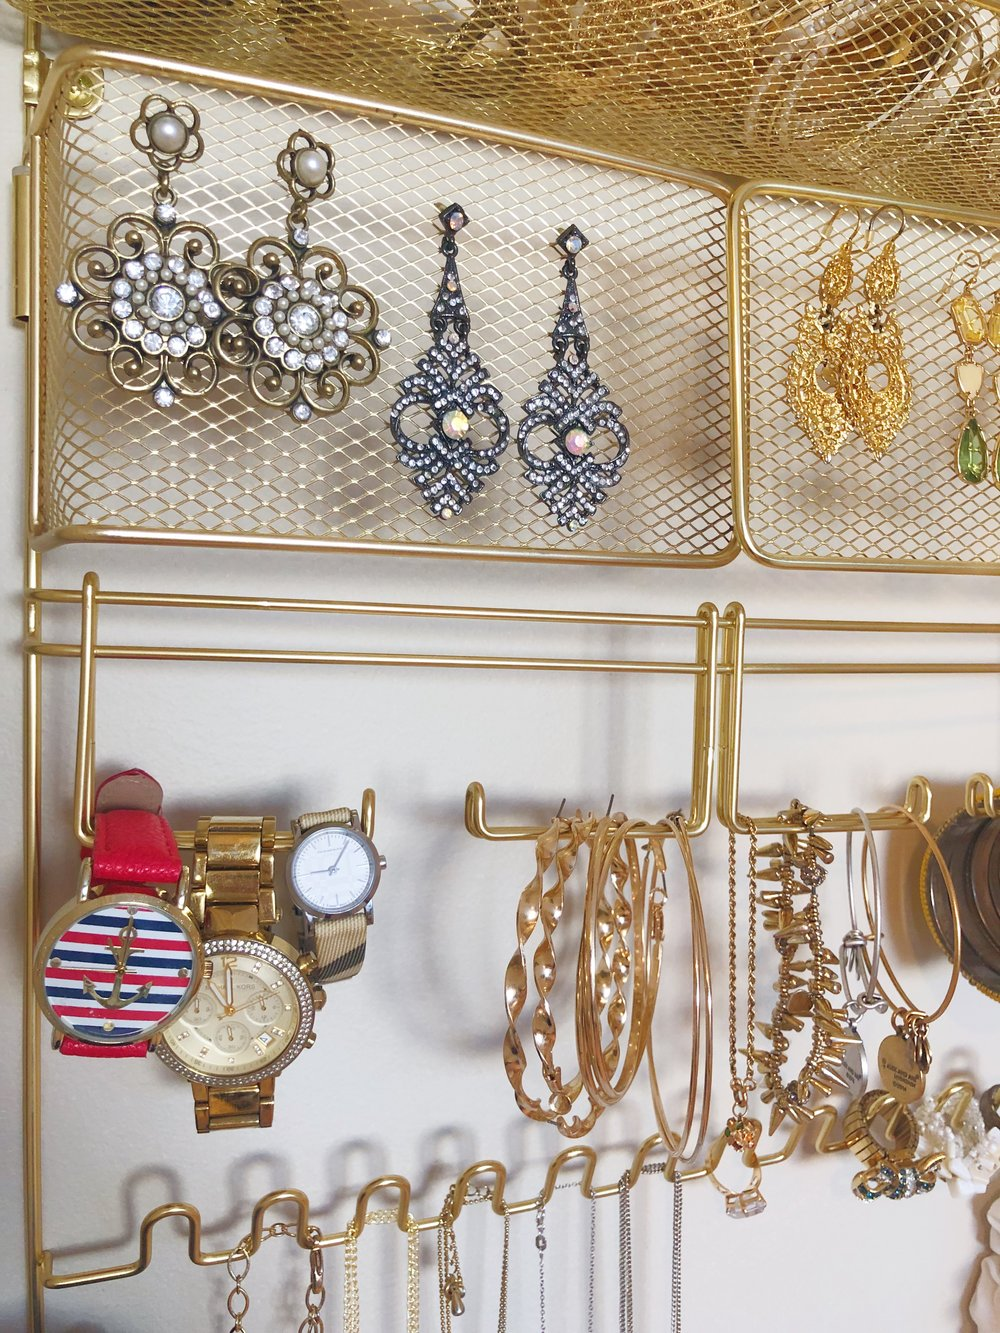 jewellery displays - There are countless options of ways to organize your jewelry nowadays. From DIYs to display cases- the possibilities are endless. And it's even more fun when you can beautifully display your special pieces.